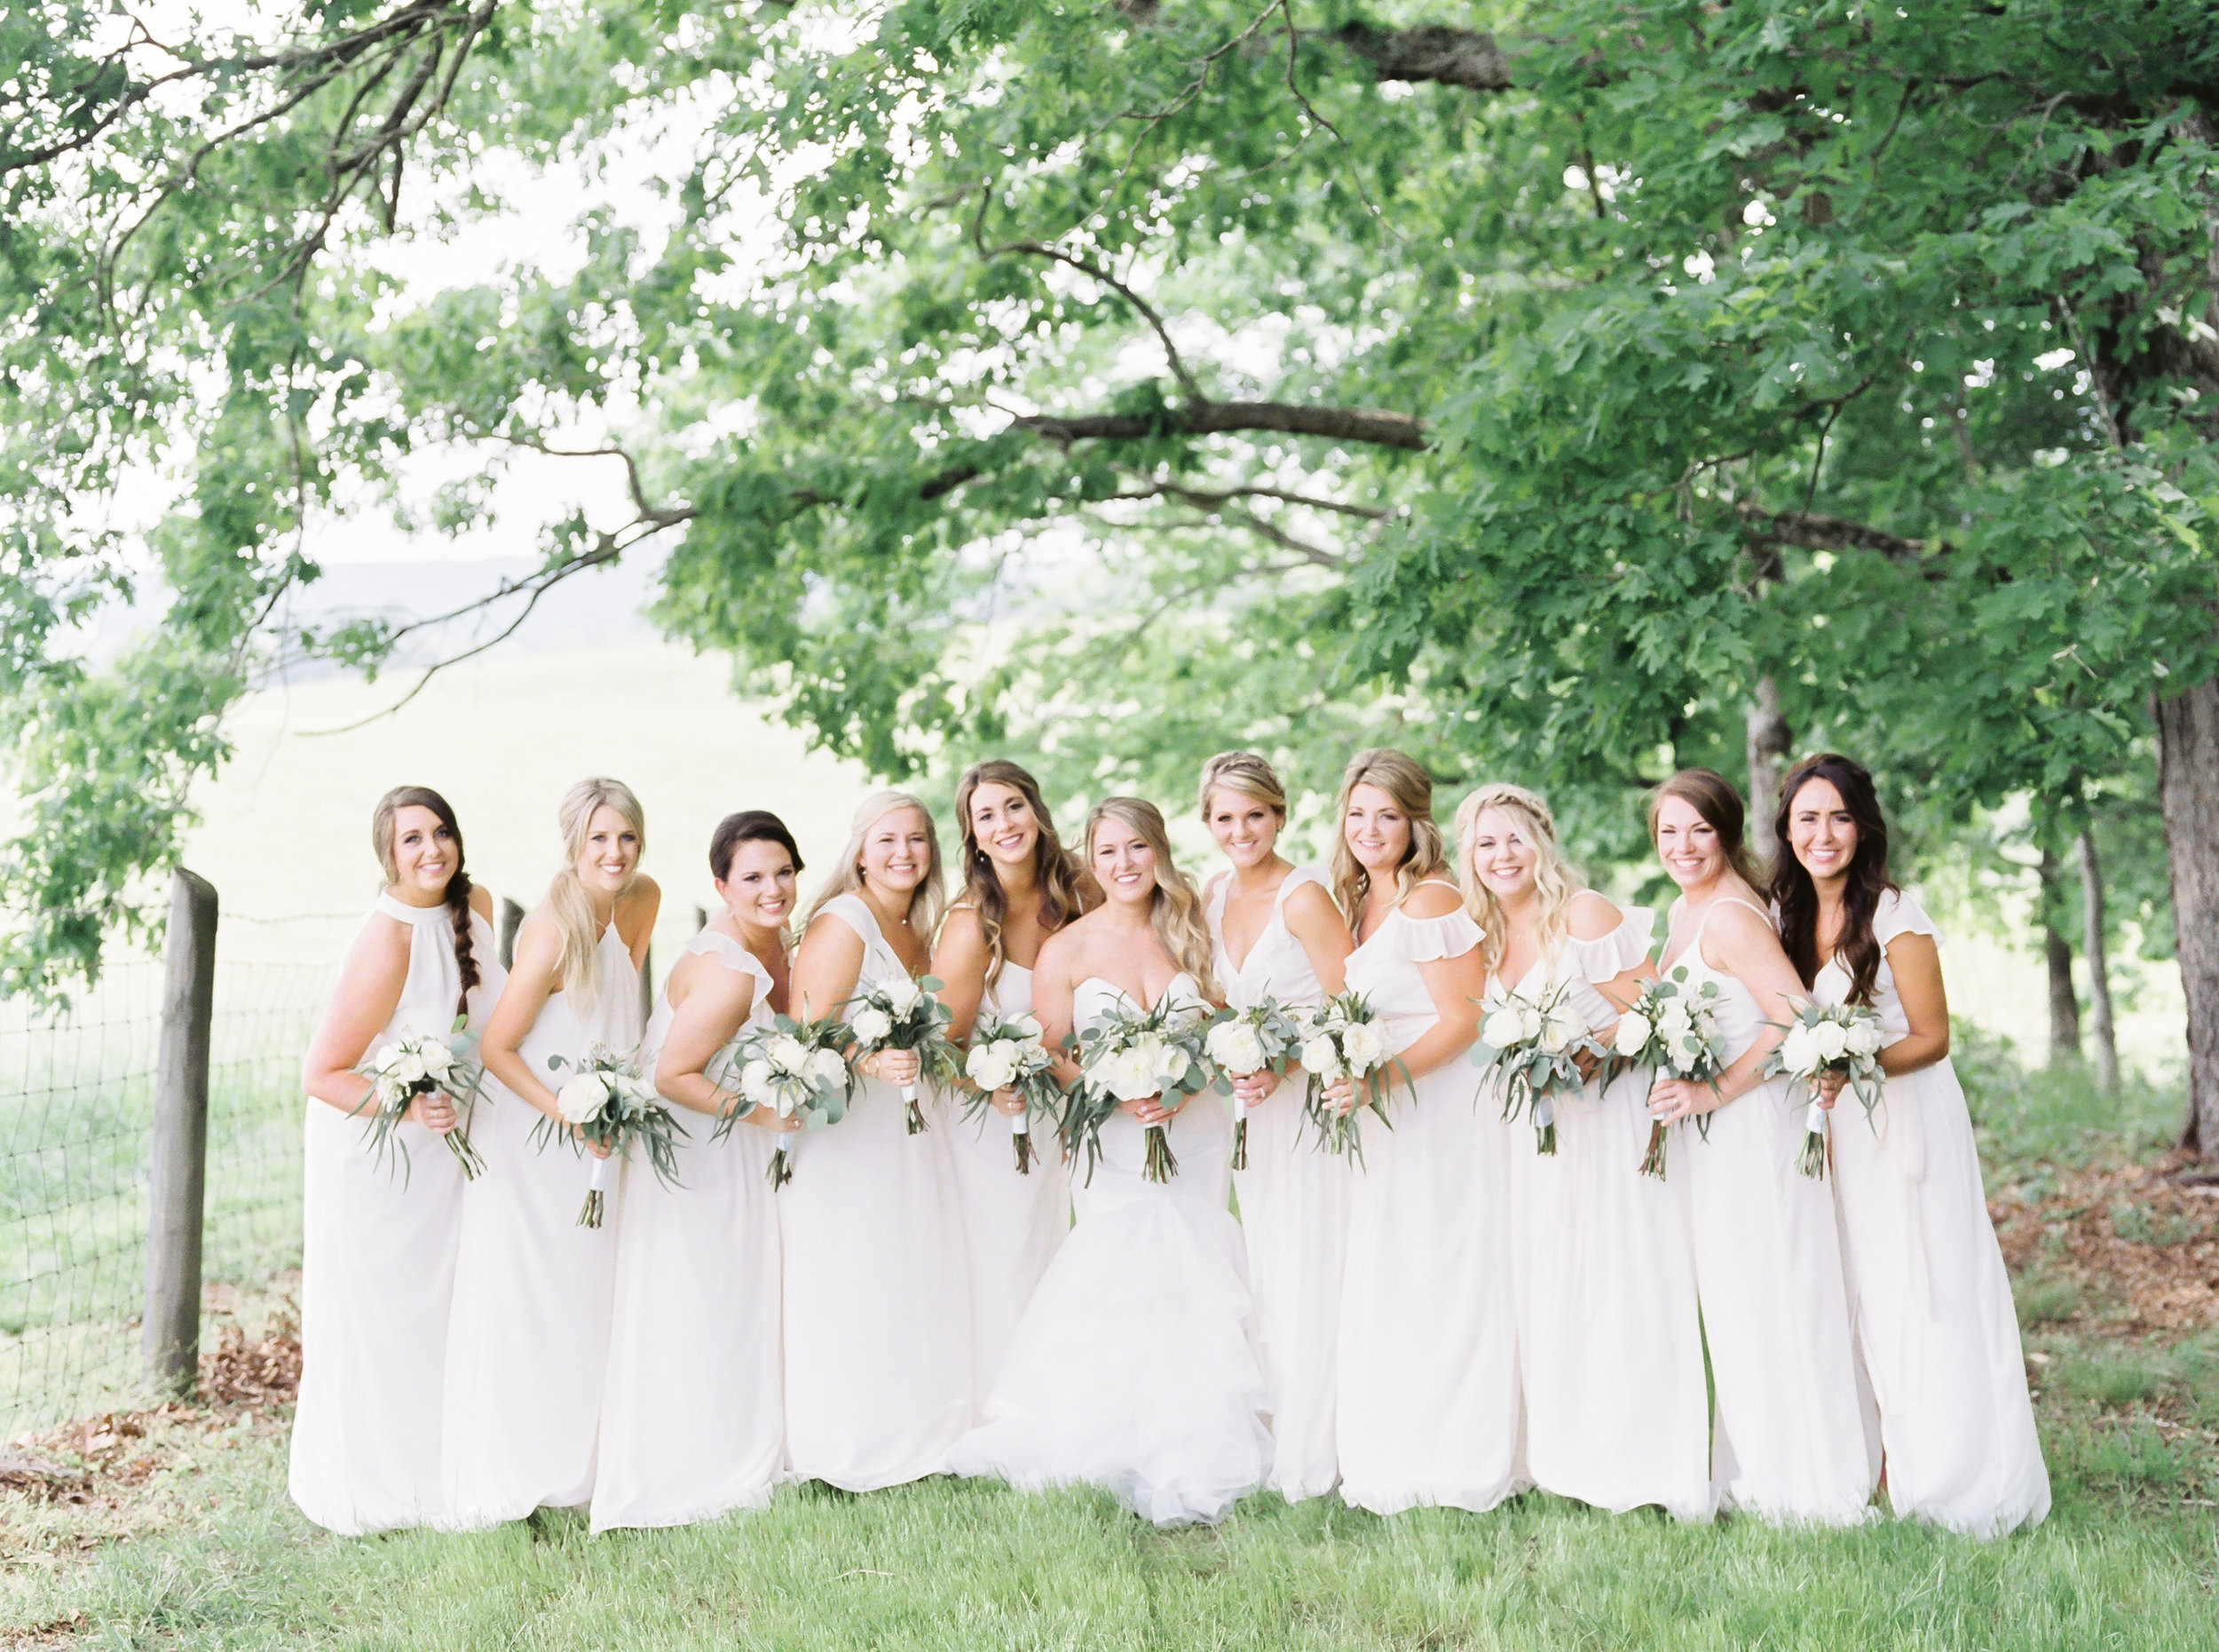 Lauren+Kyle-Bridesmaids-72.jpg